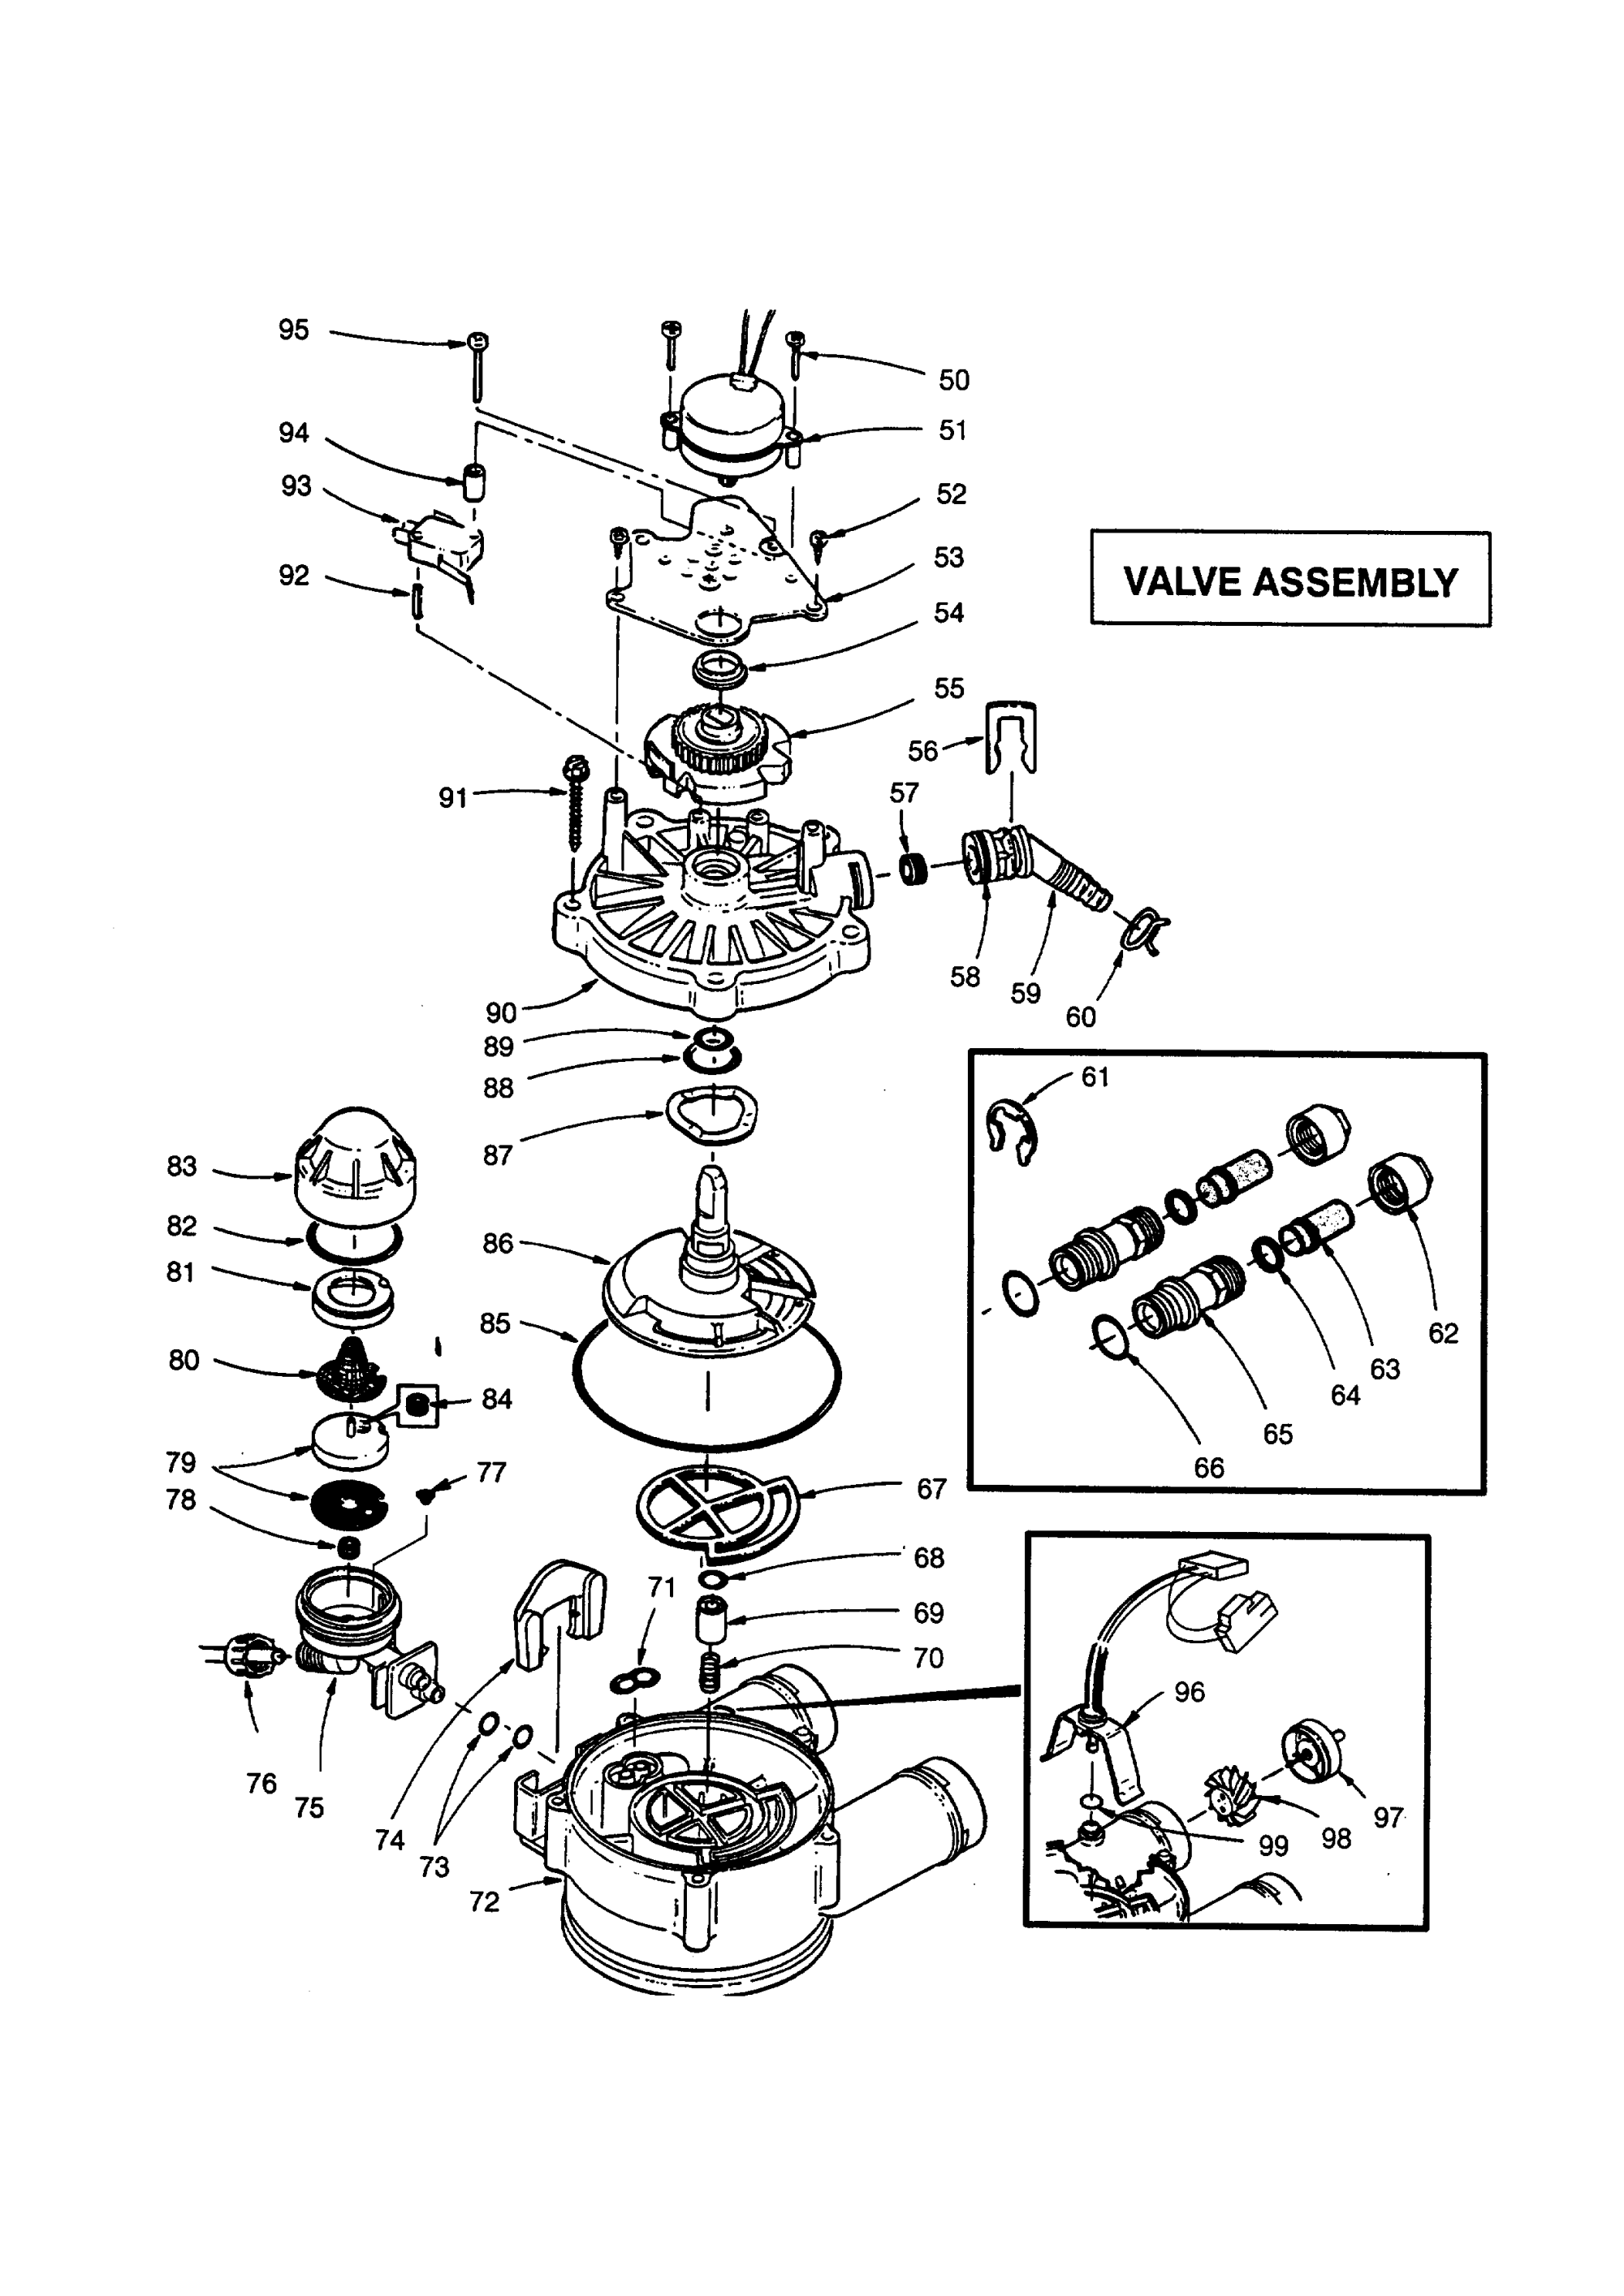 hight resolution of kenmore 625348591 valve assembly diagram